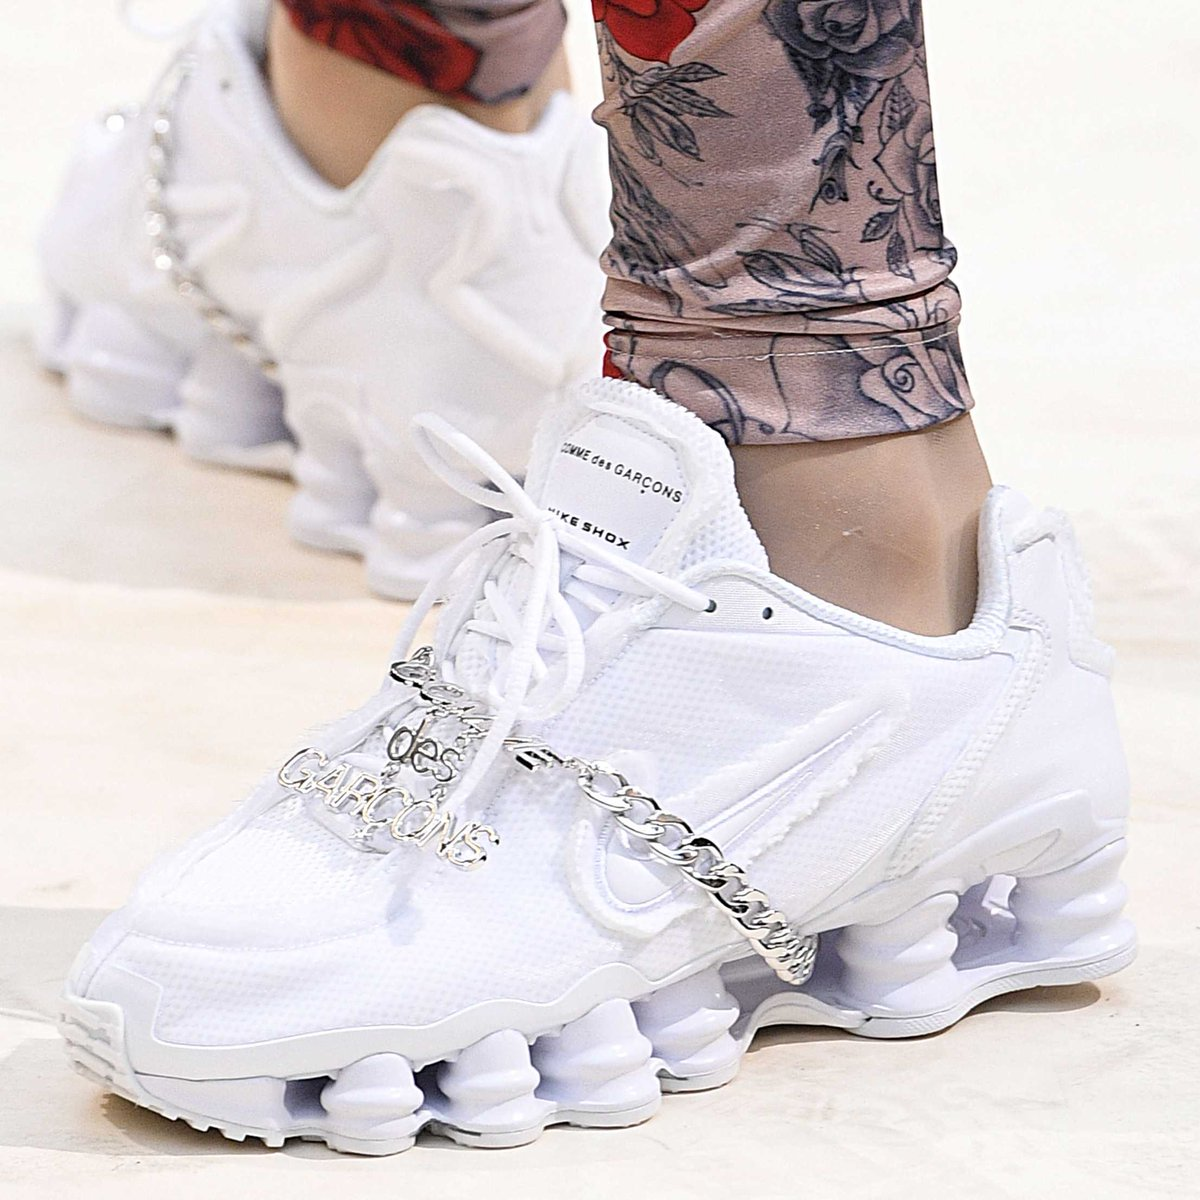 brand new 0caca 4944e comme des garcons x nike shox spotted on the runway during paris fashion  week victor virgile